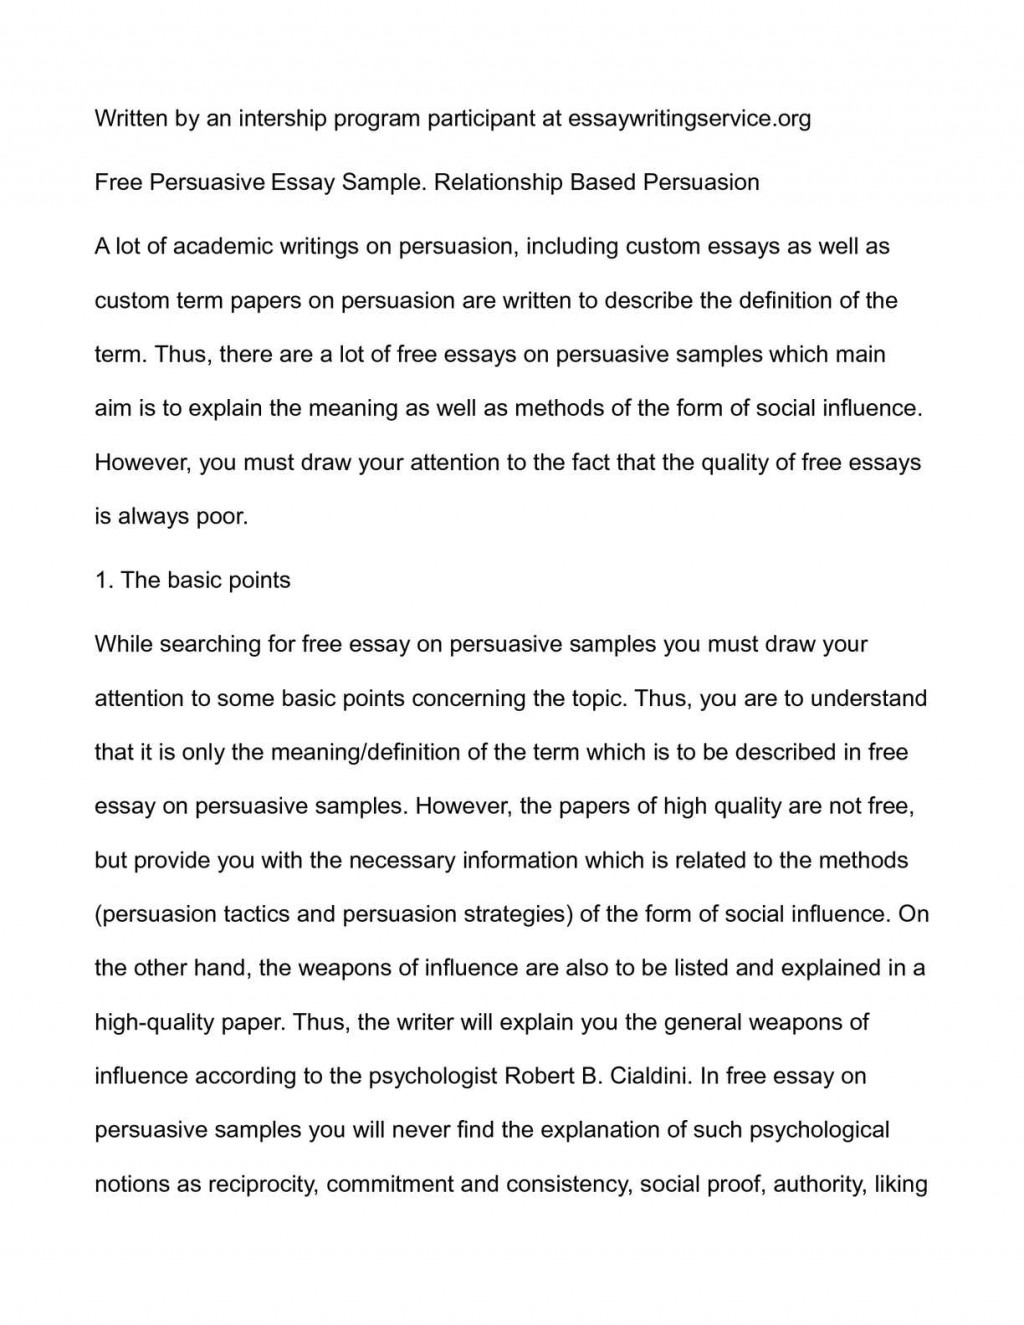 012 persuasive speech outline template 3tgrxdkt essay example